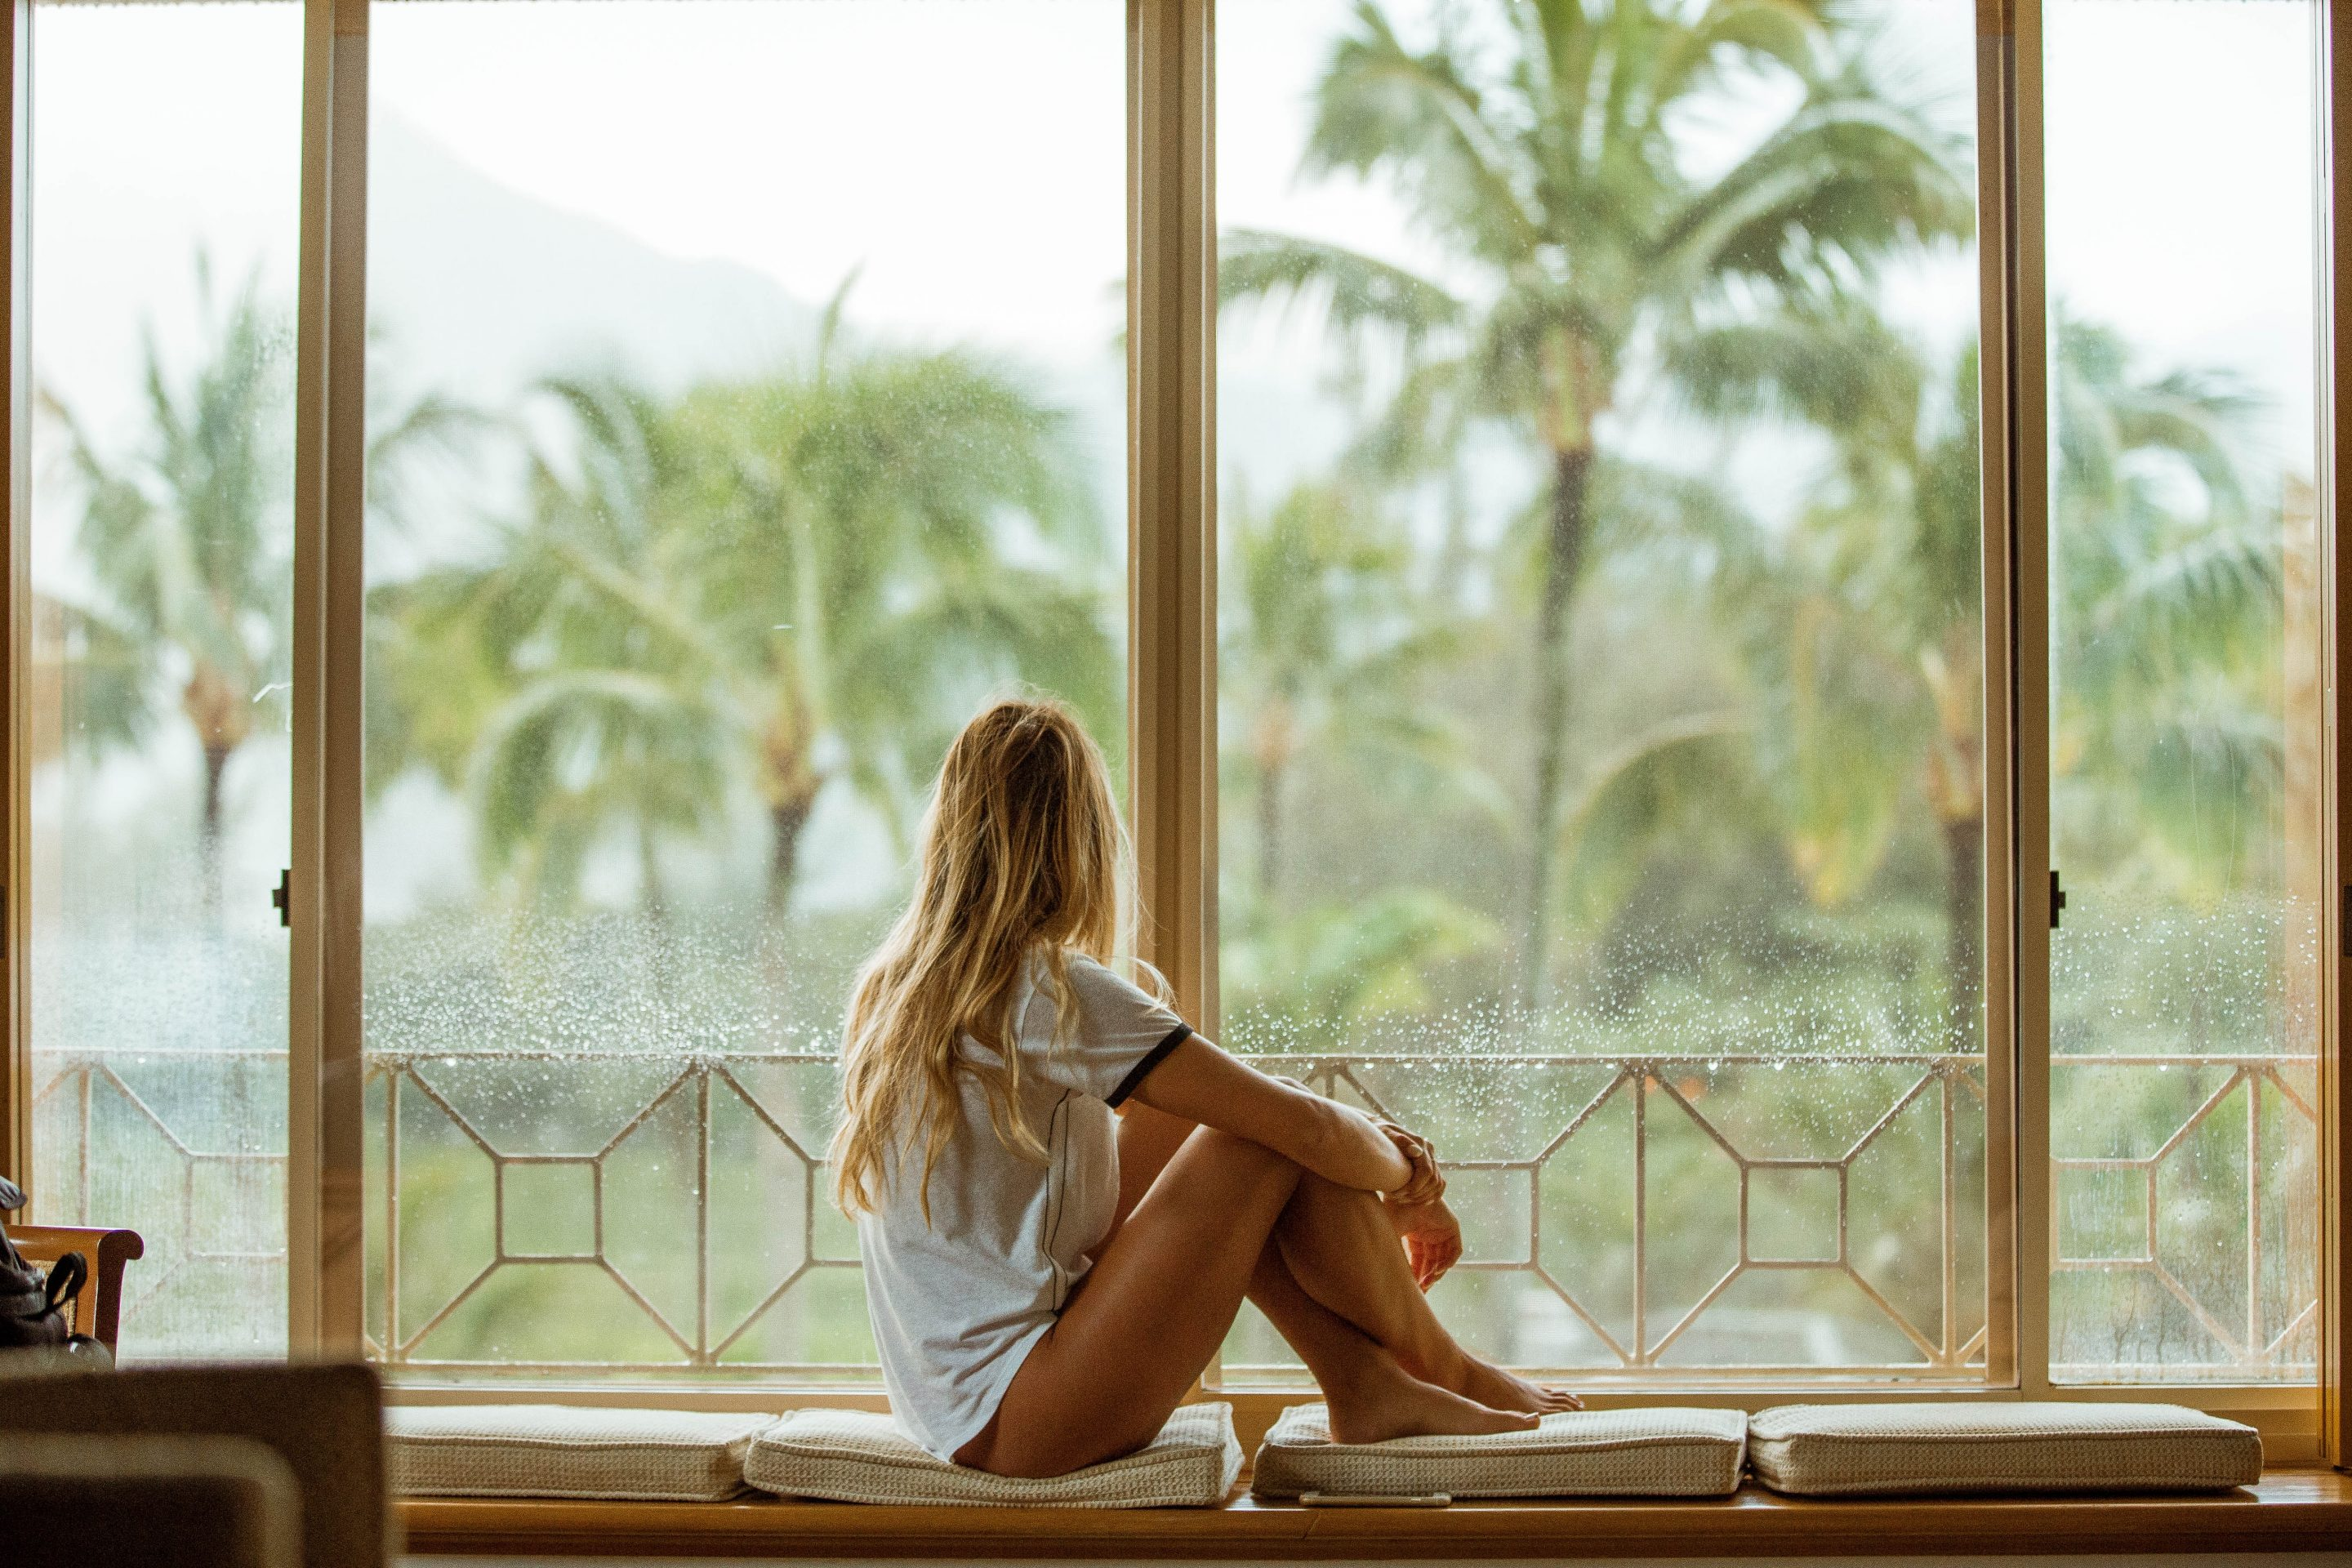 Heading to Bangkok, Koh Tao or Phuket for a real Thai massage? Where to find the best massage in Thailand - from cheap & cheerful to luxurious hotel spas.